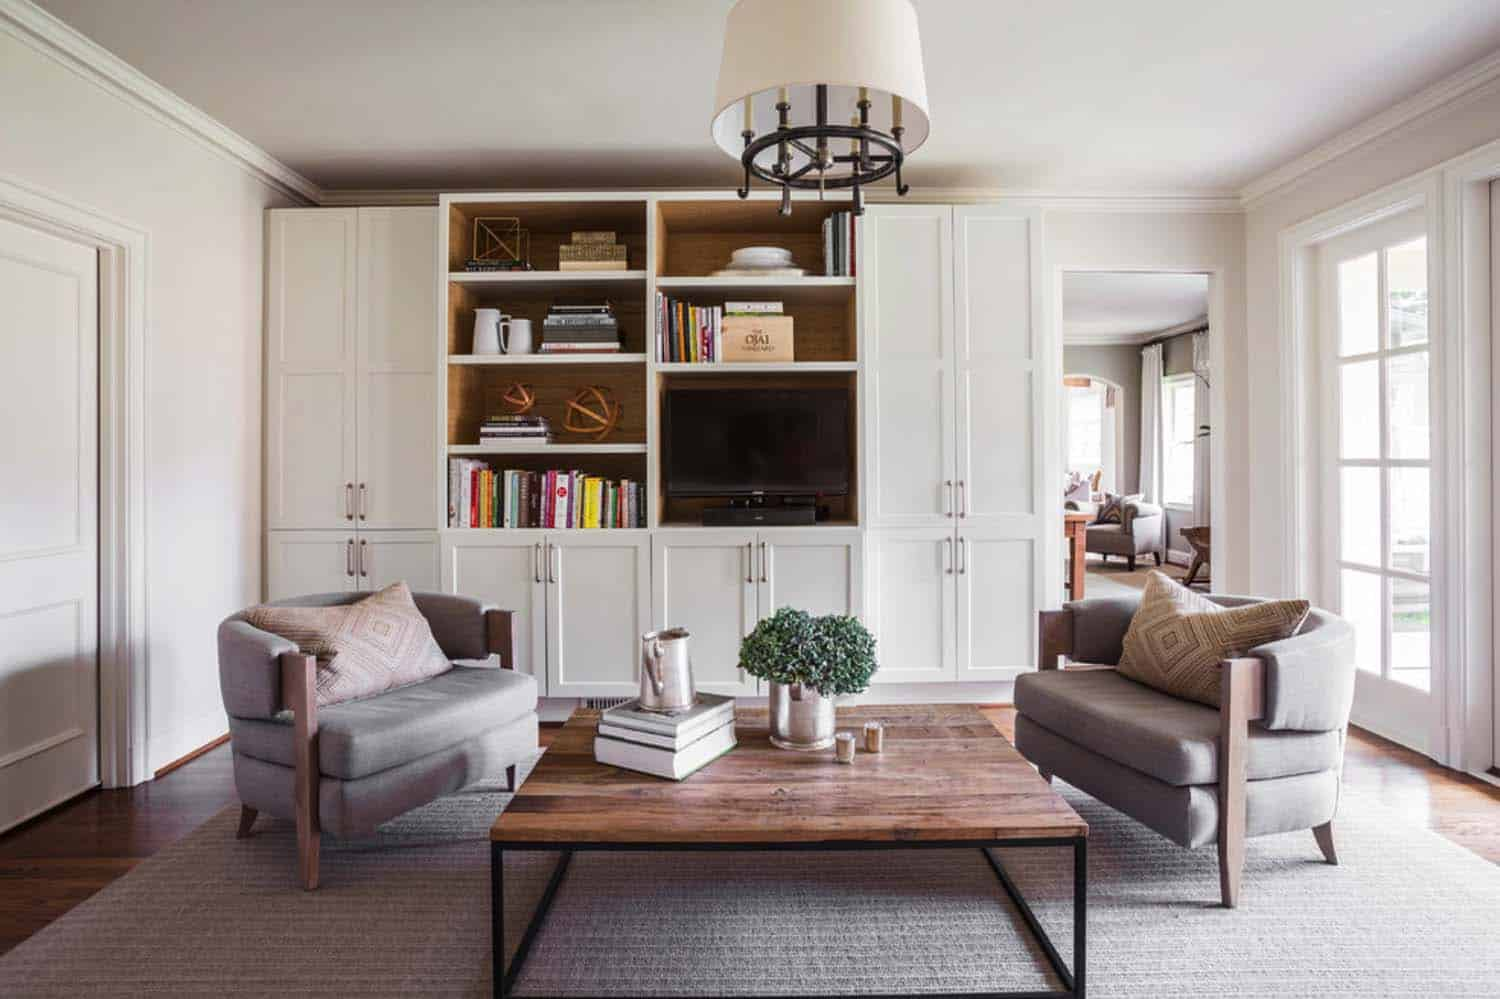 Midcentury Colonial Home-Marie Flanigan Interiors-14-1 Kindesign